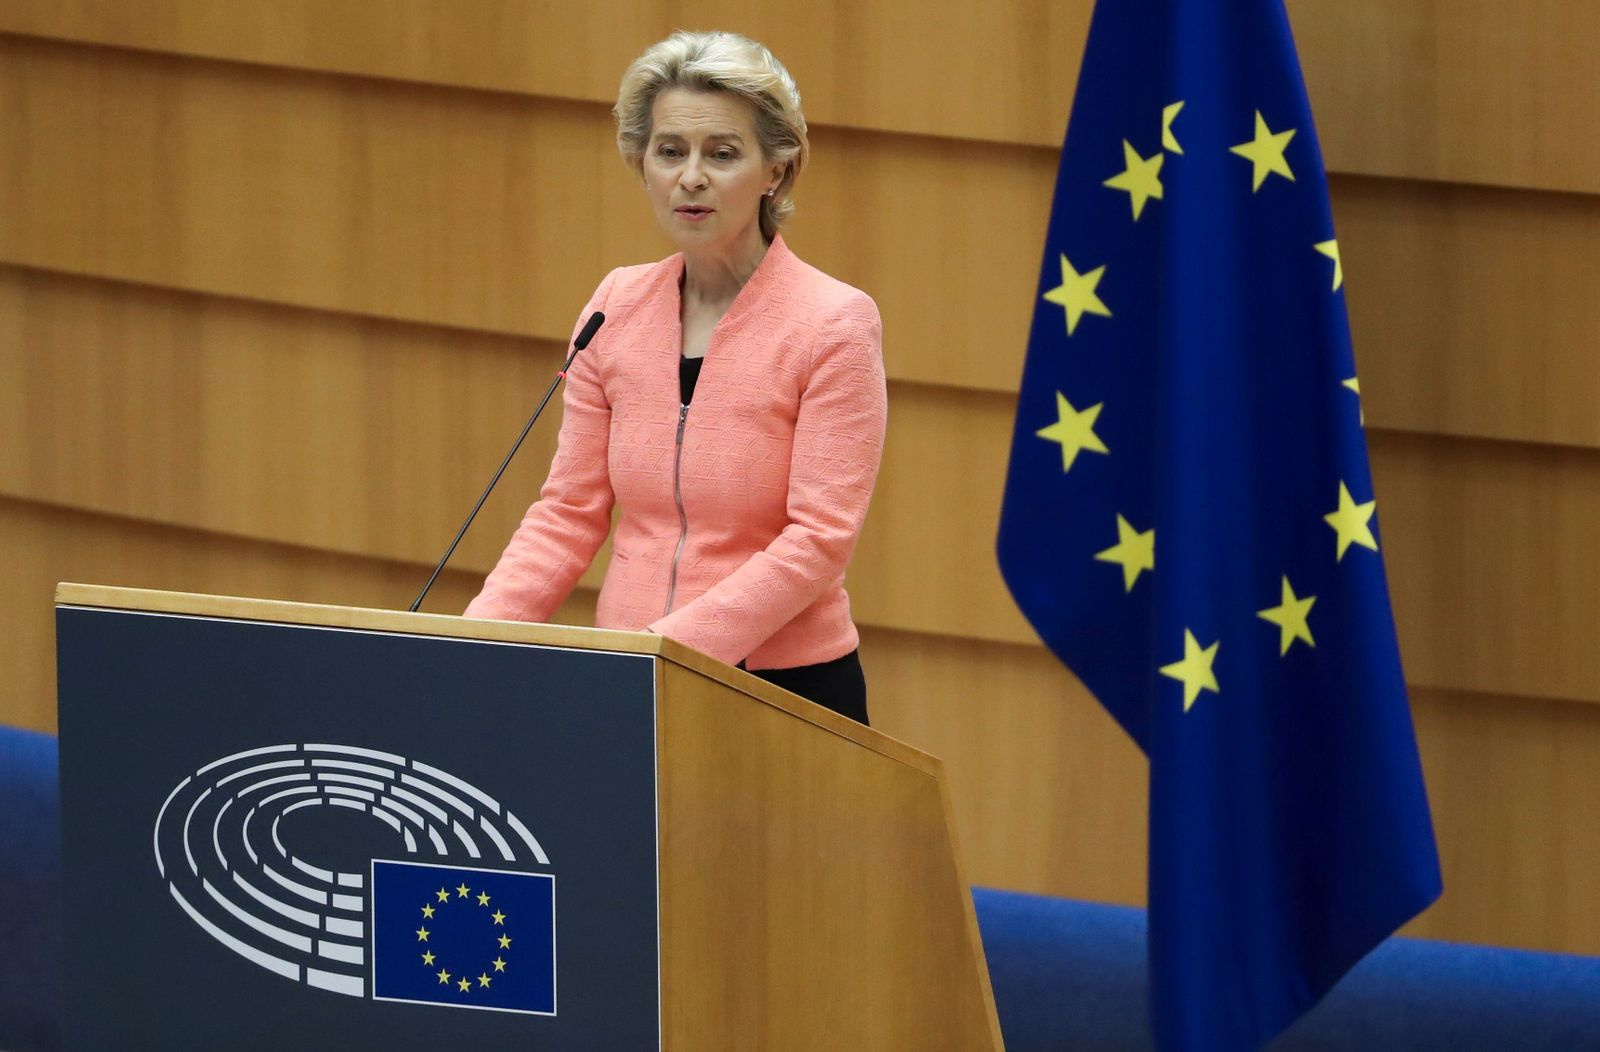 European Commission President Ursula von der Leyen addresses her first State of the European Union speech during a plenary session of the European Parliament, in Brussels